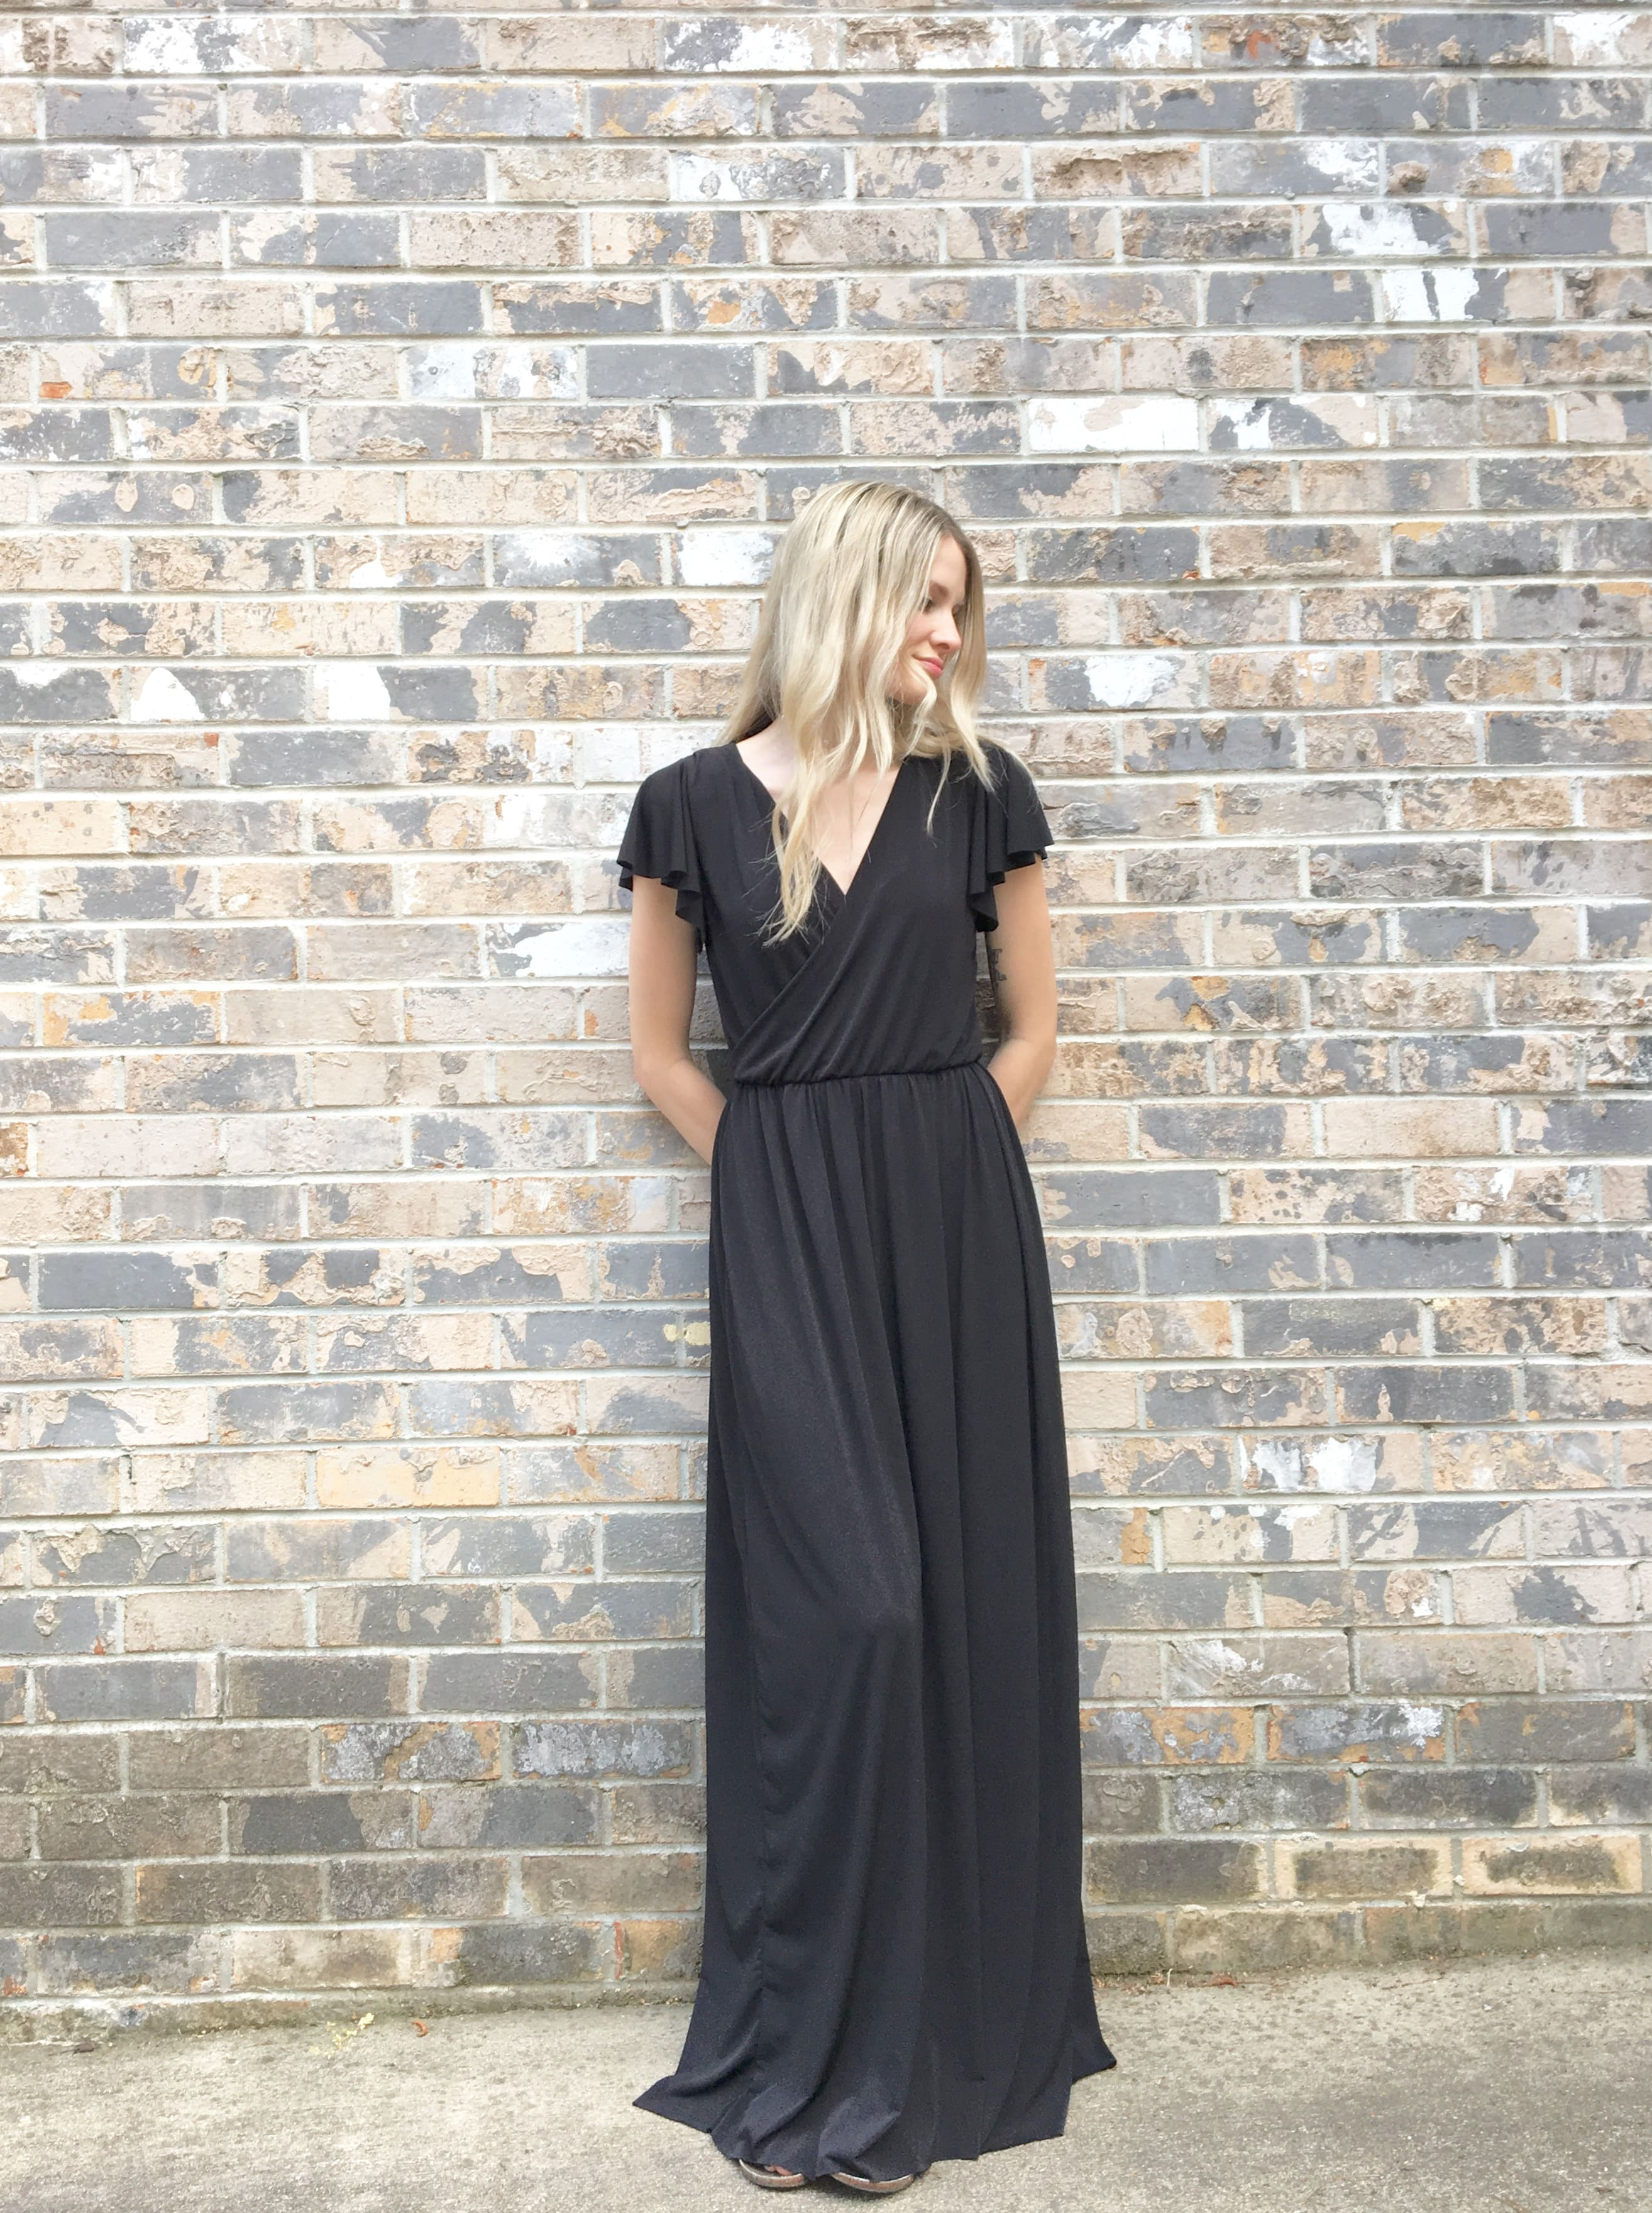 b8217d9a8a1 Choosing the Perfect Knit for Summer Maxi Dresses